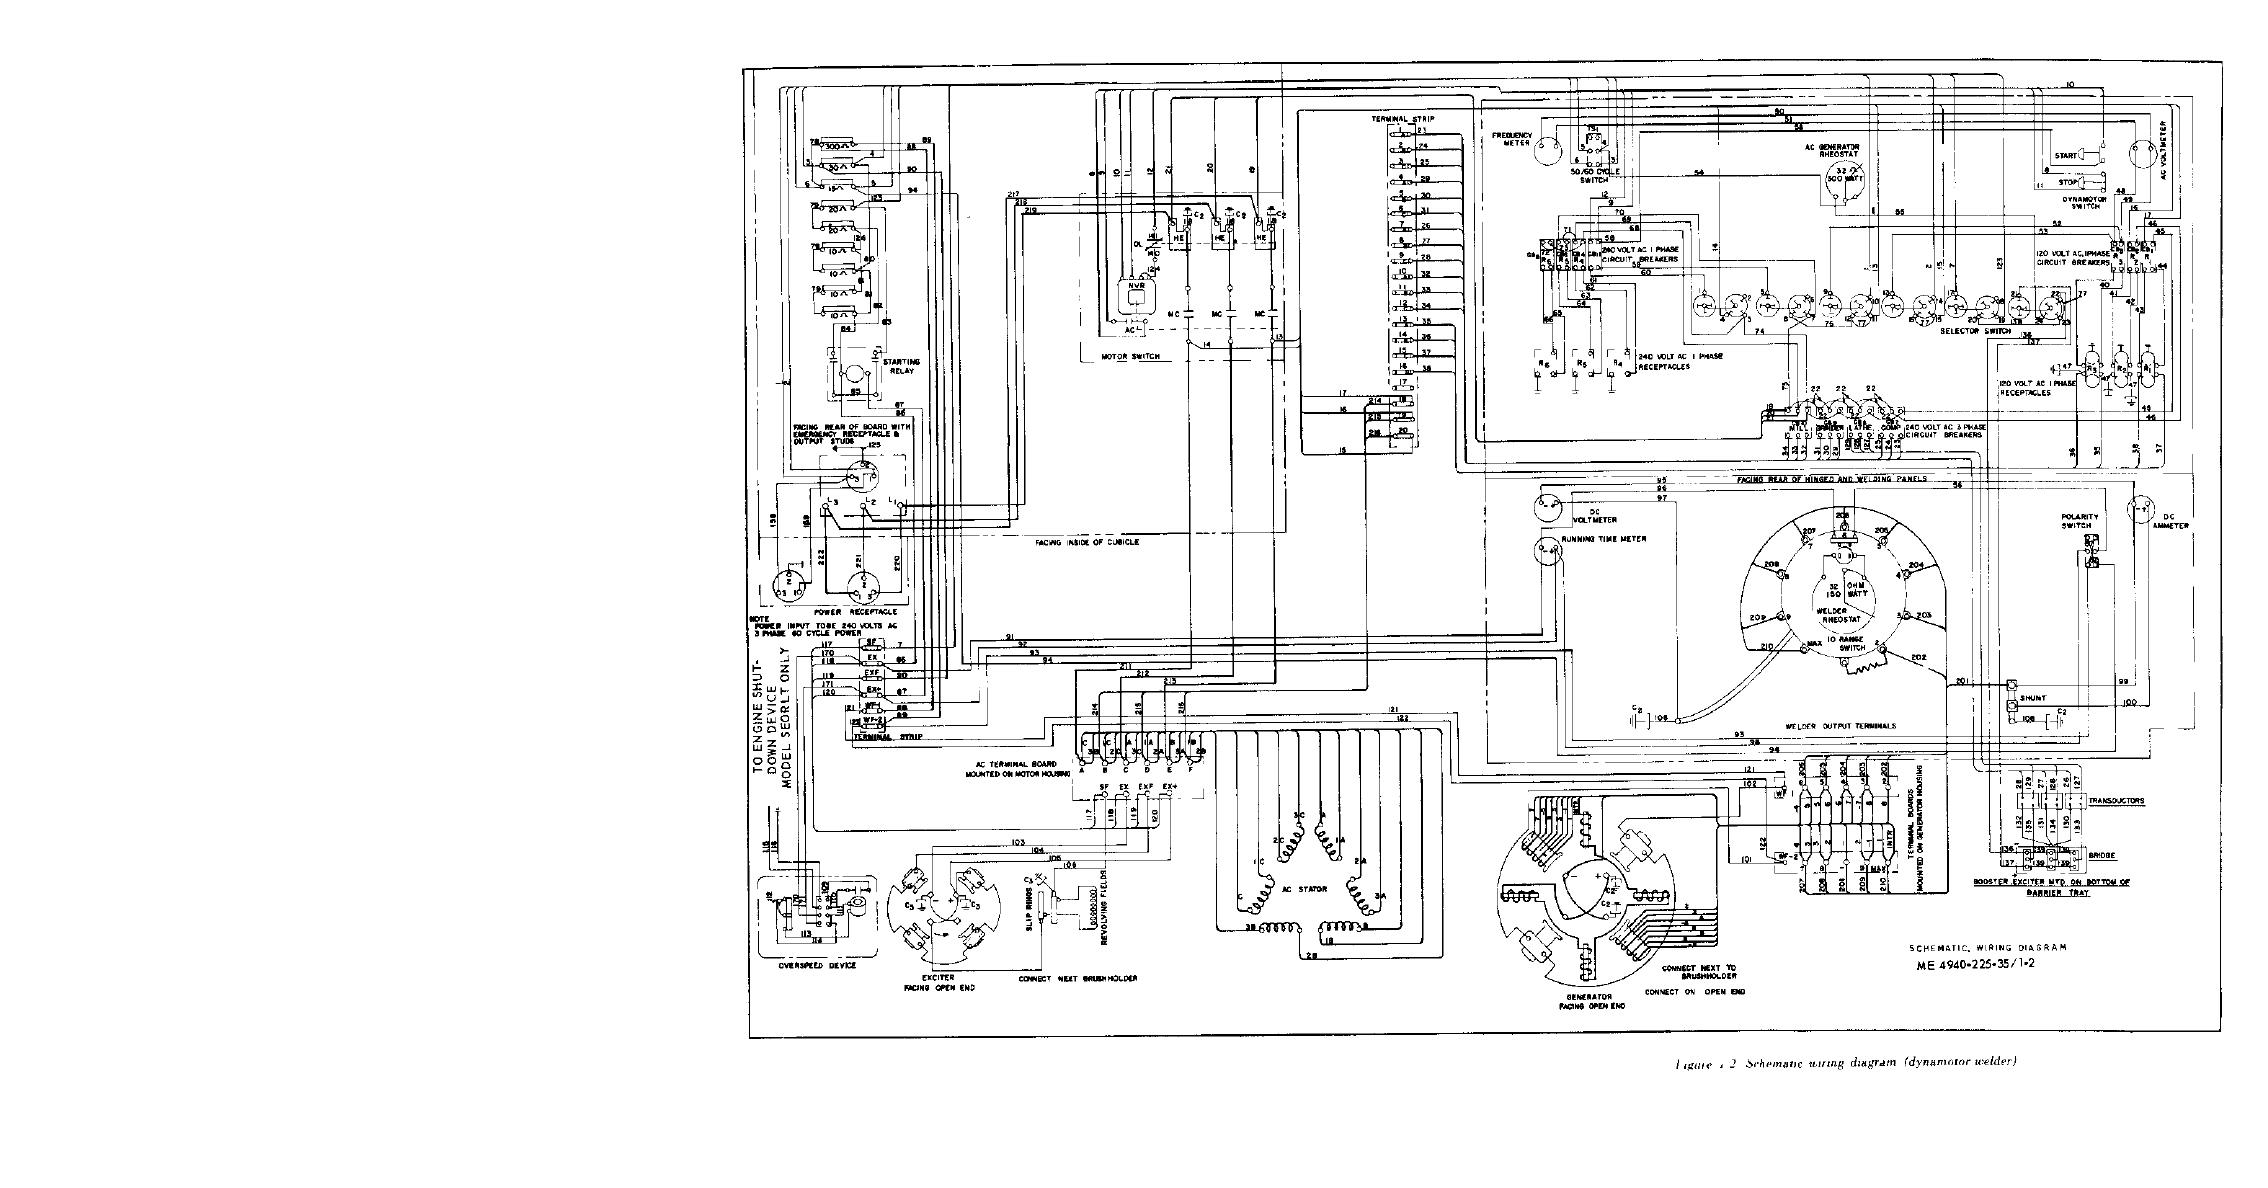 Lincoln Sa 200 Wiring Diagram, Lincoln, Free Engine Image